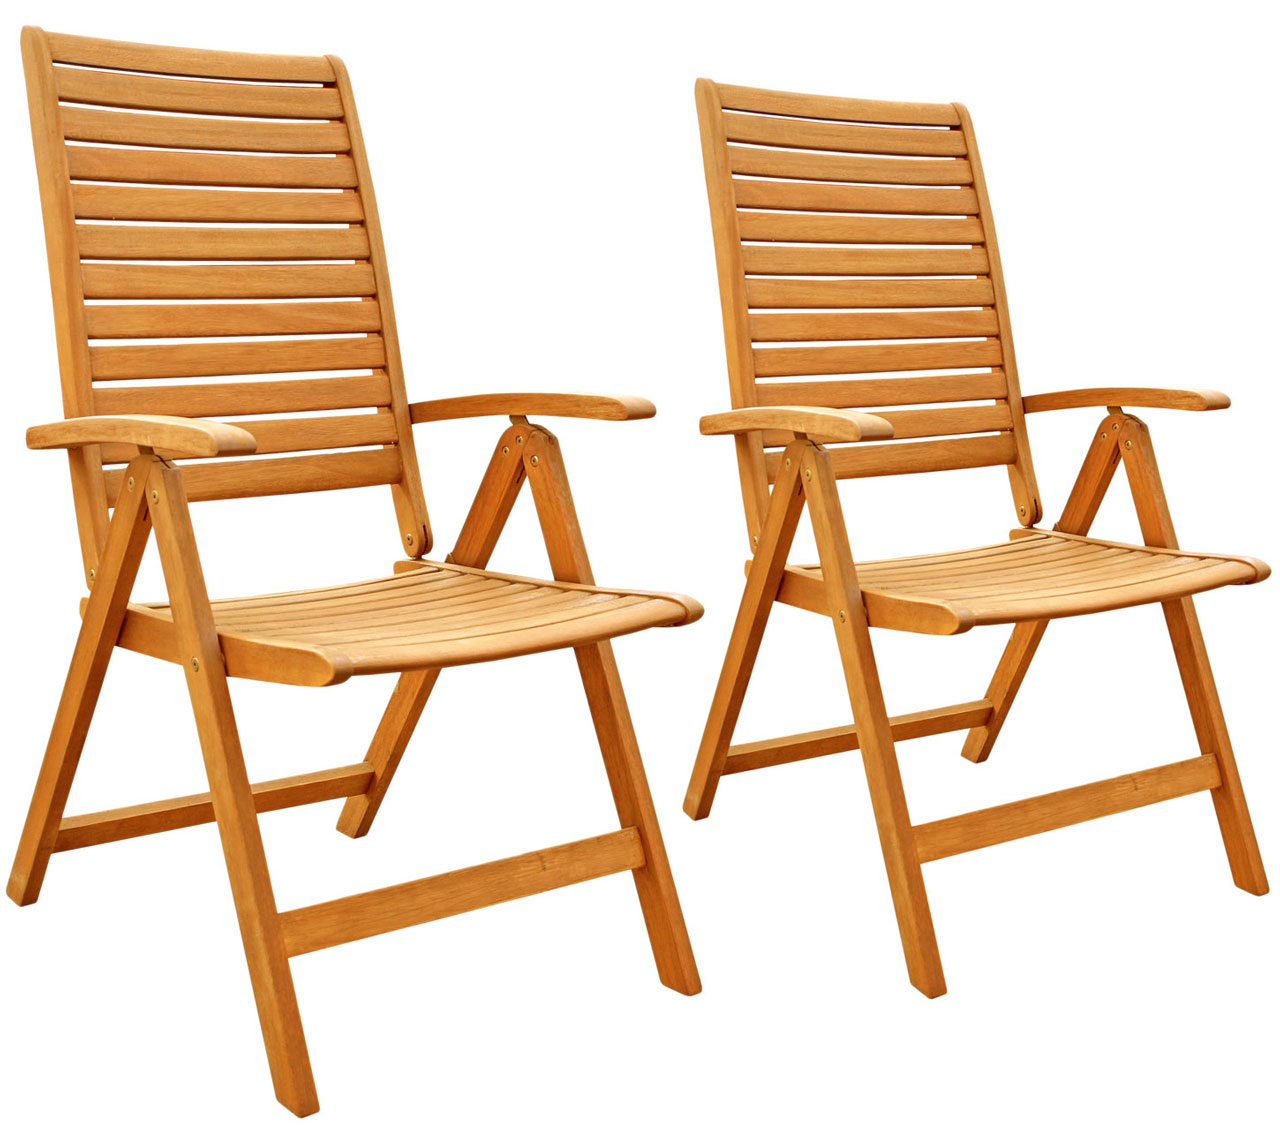 wooden porch chairs clear plastic chair rung protectors outdoor wood folding arm ideas on foter garden with arms